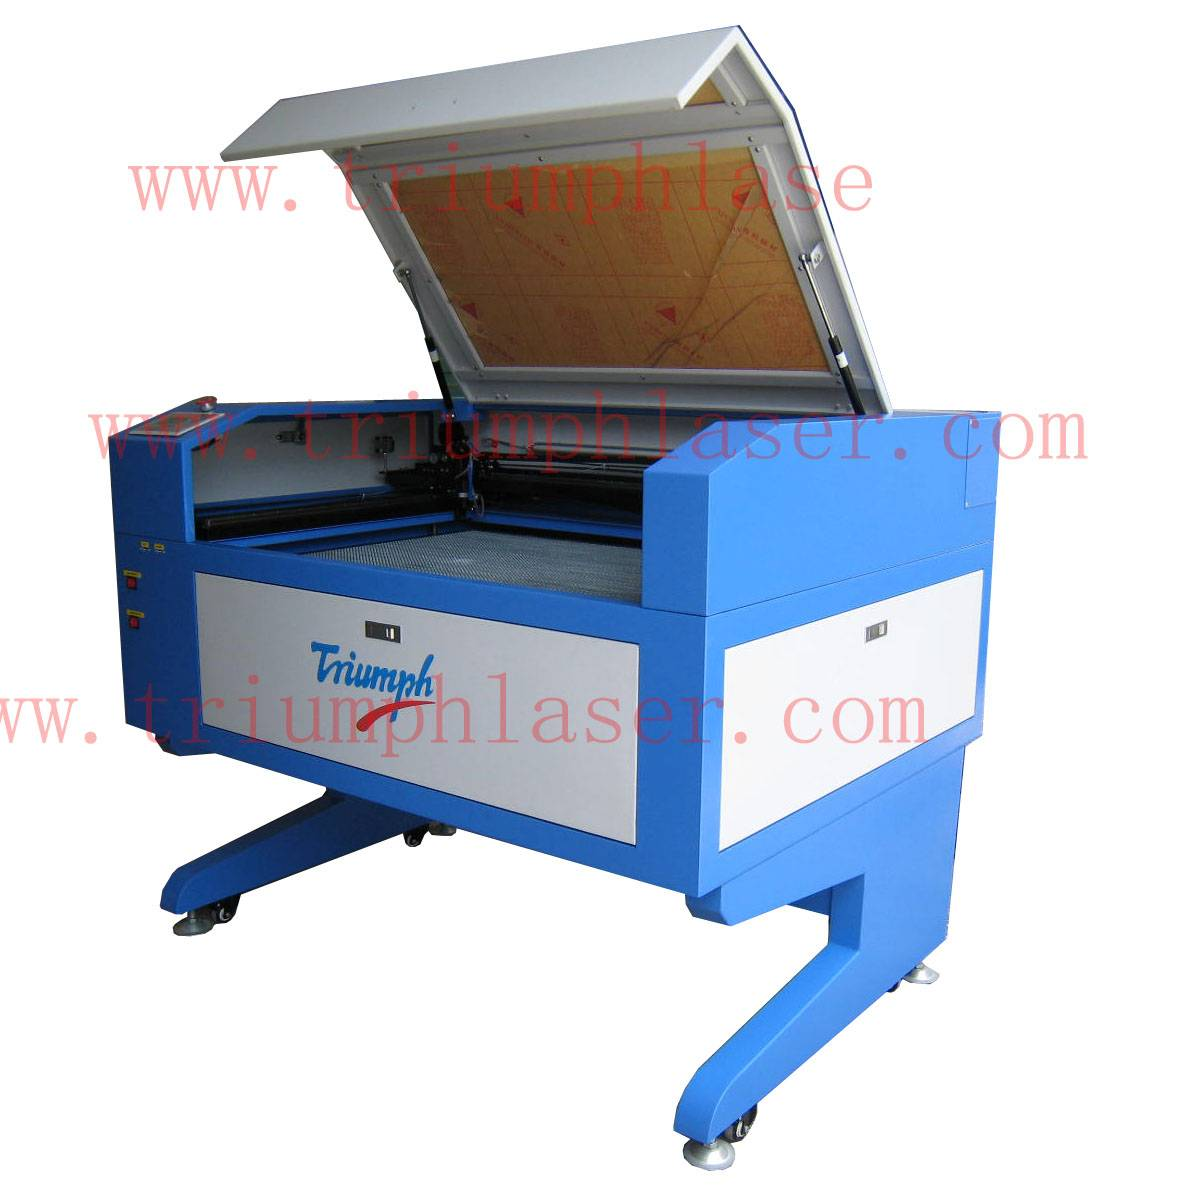 Auto-focus&Up/down&Rotary Laser Engraving&Cutting Machine(TR-9060A/TR-1390A)